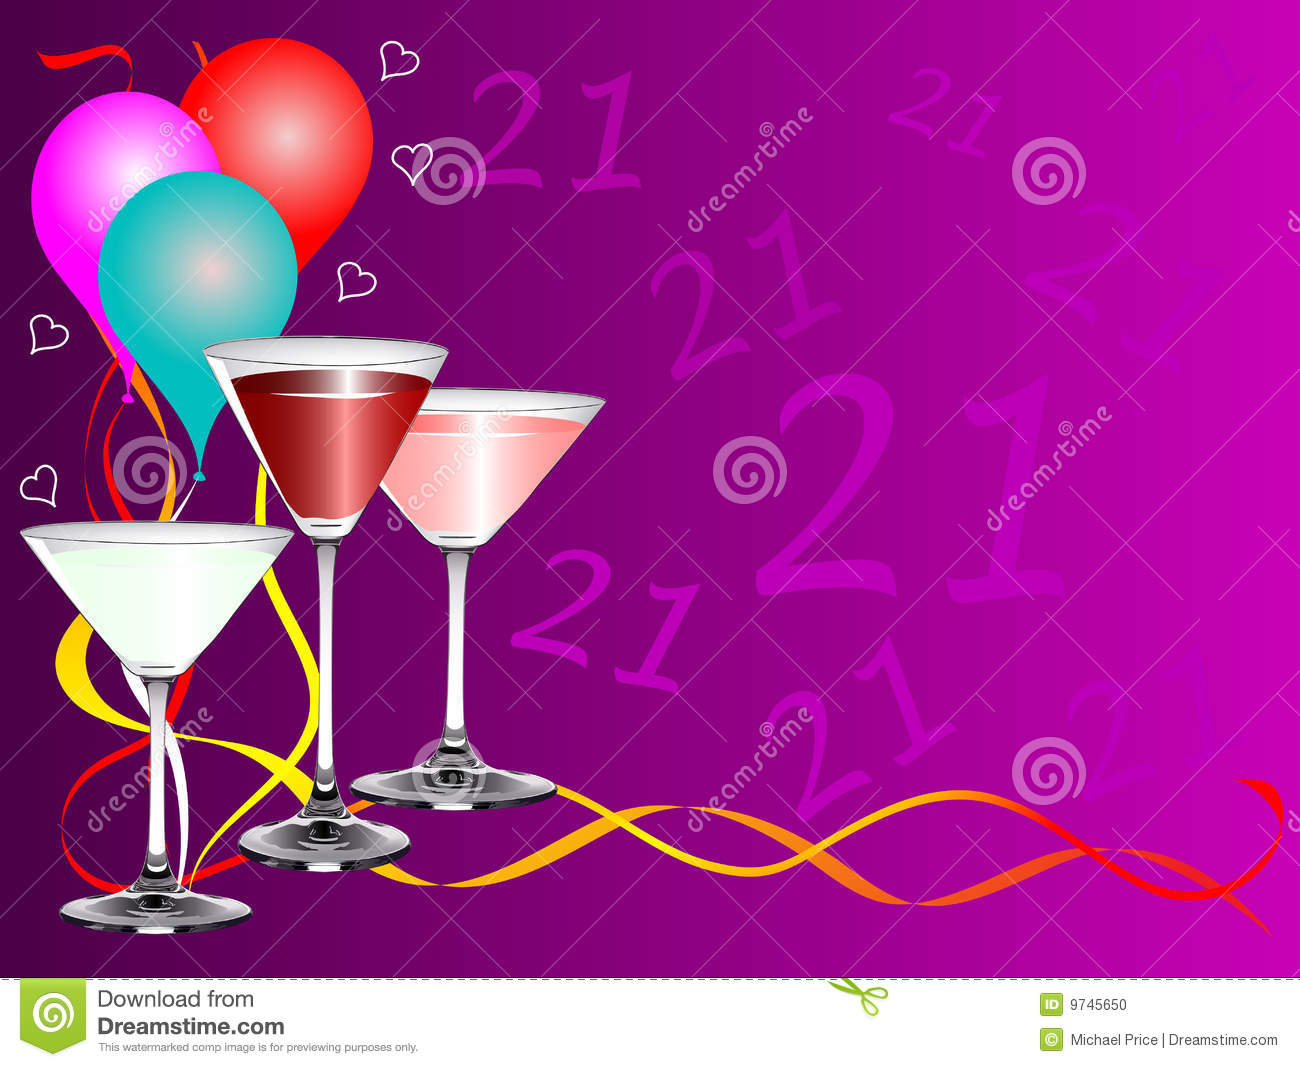 first birthday background images ; twenty-first-birthday-party-background-template-9745650